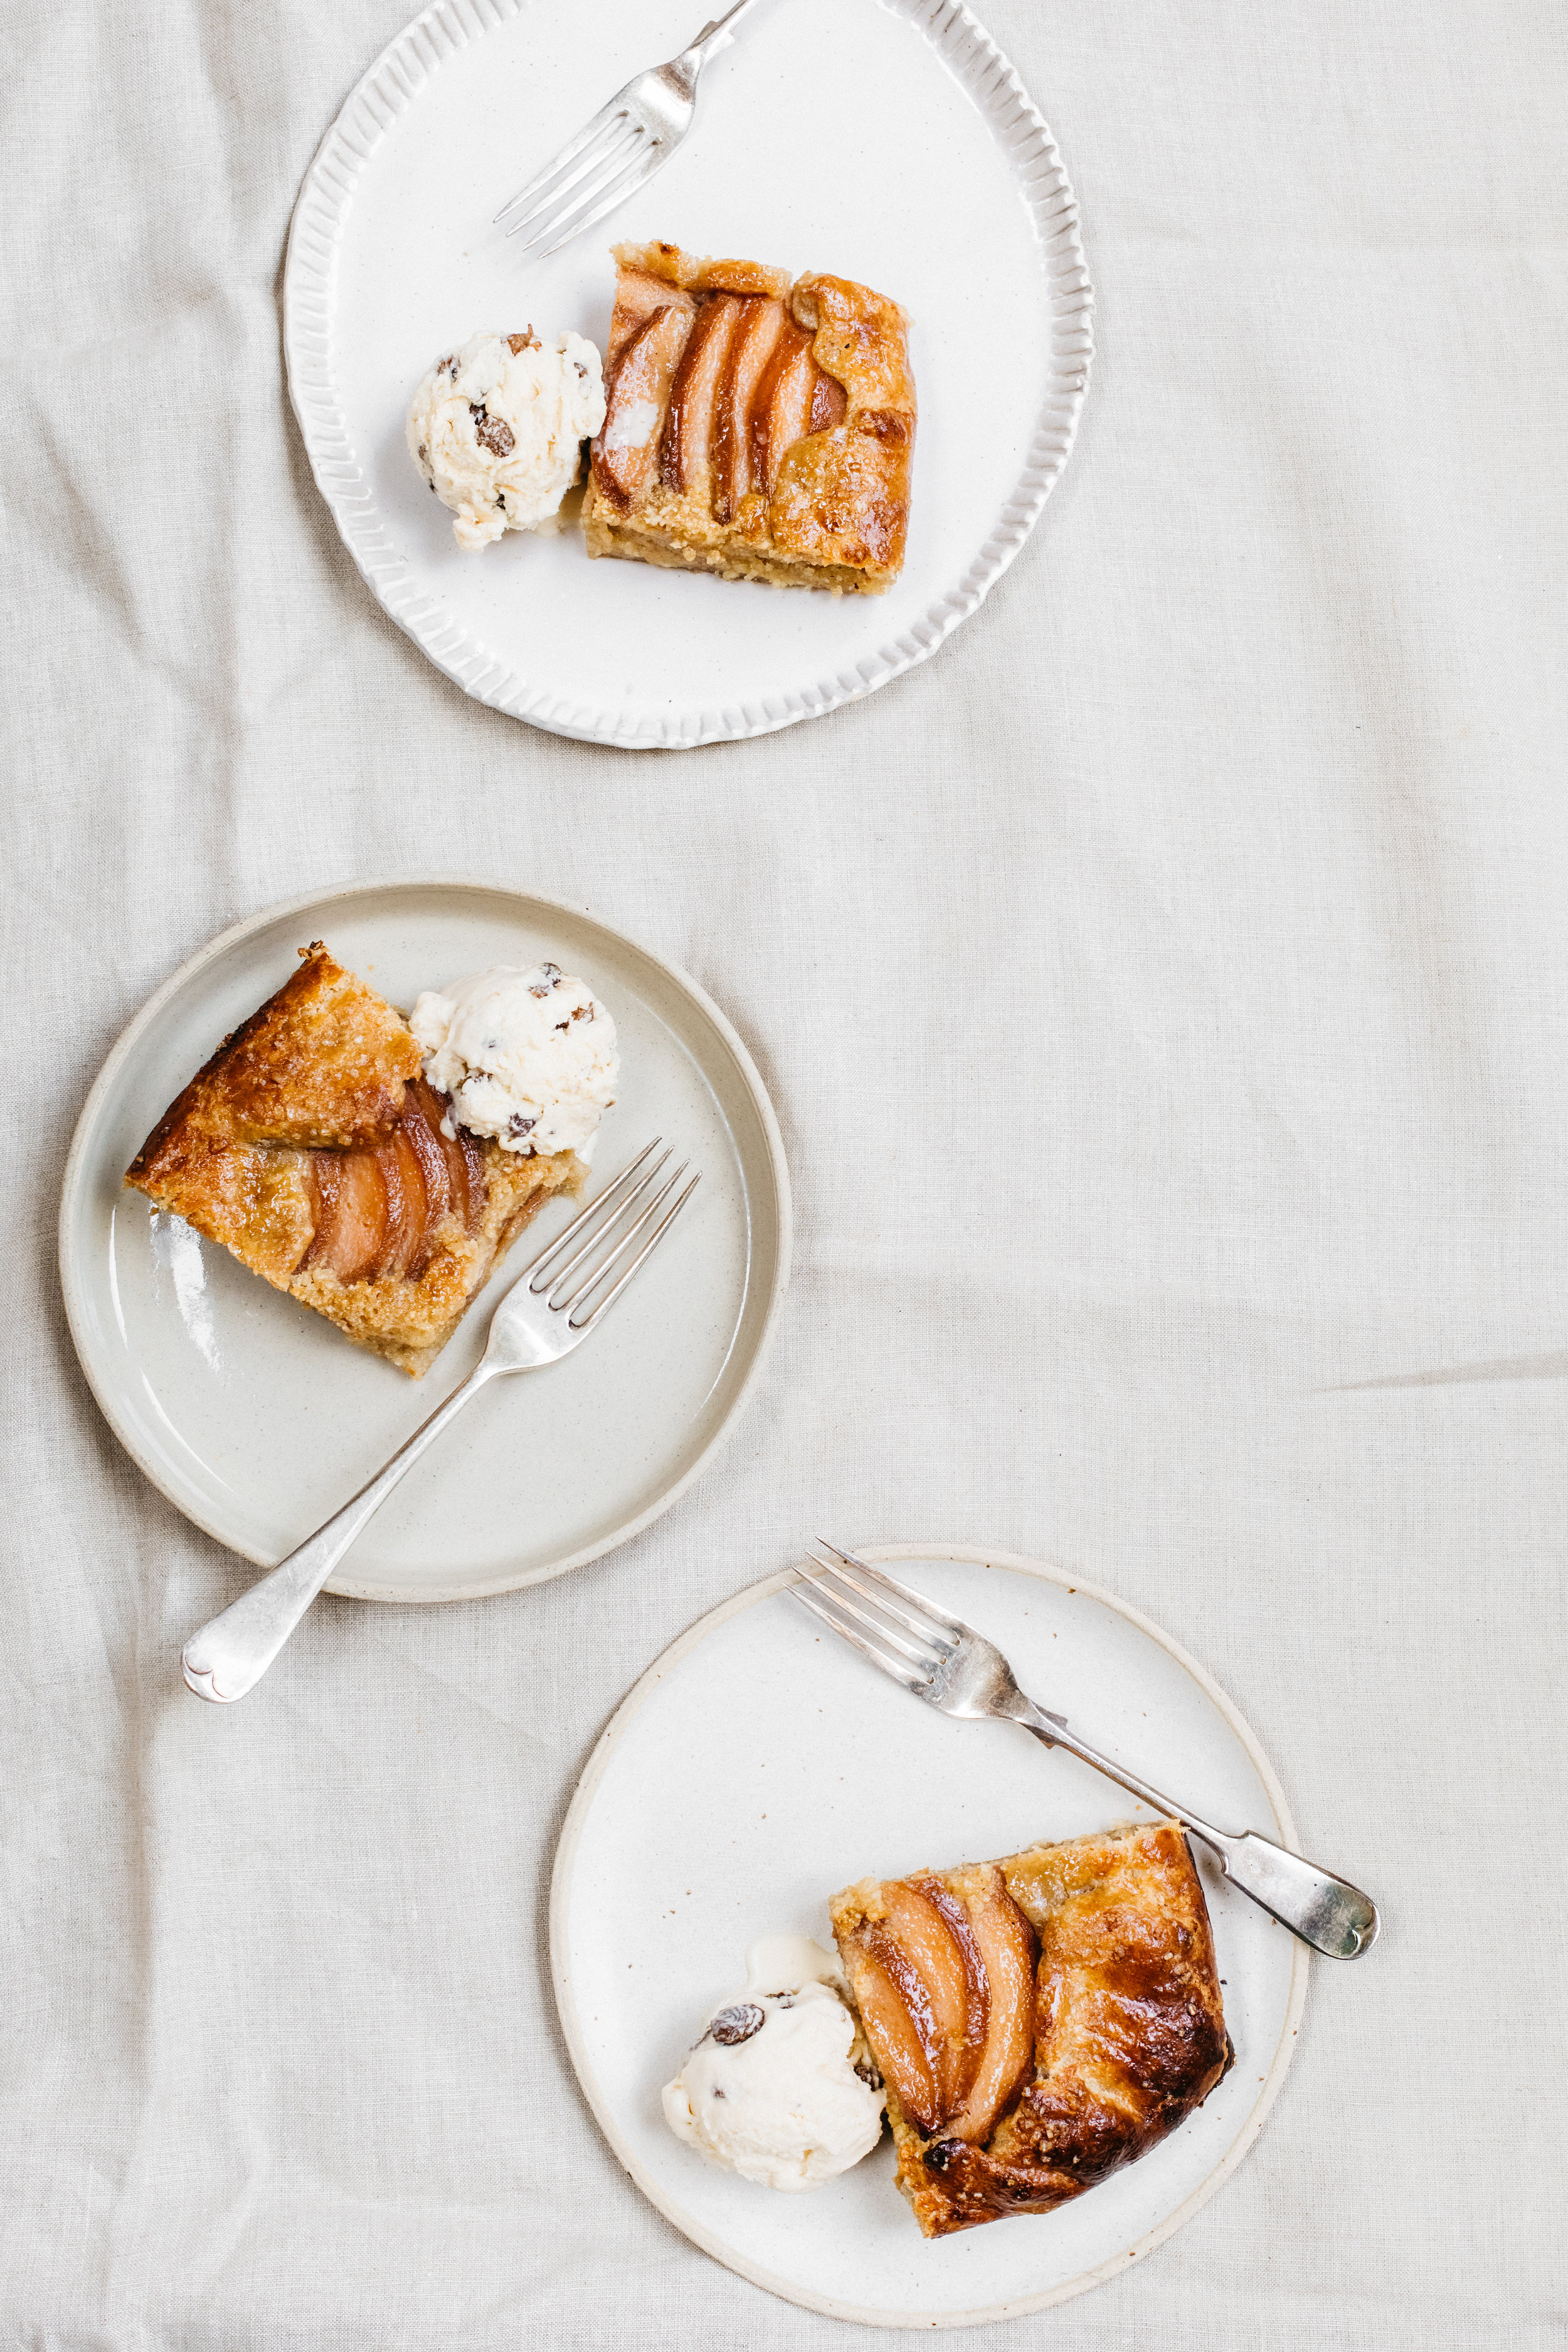 Quince & Almond Frangipane Galette With Spelt Pastry and Lazy Rum & Sultana Ice Cream